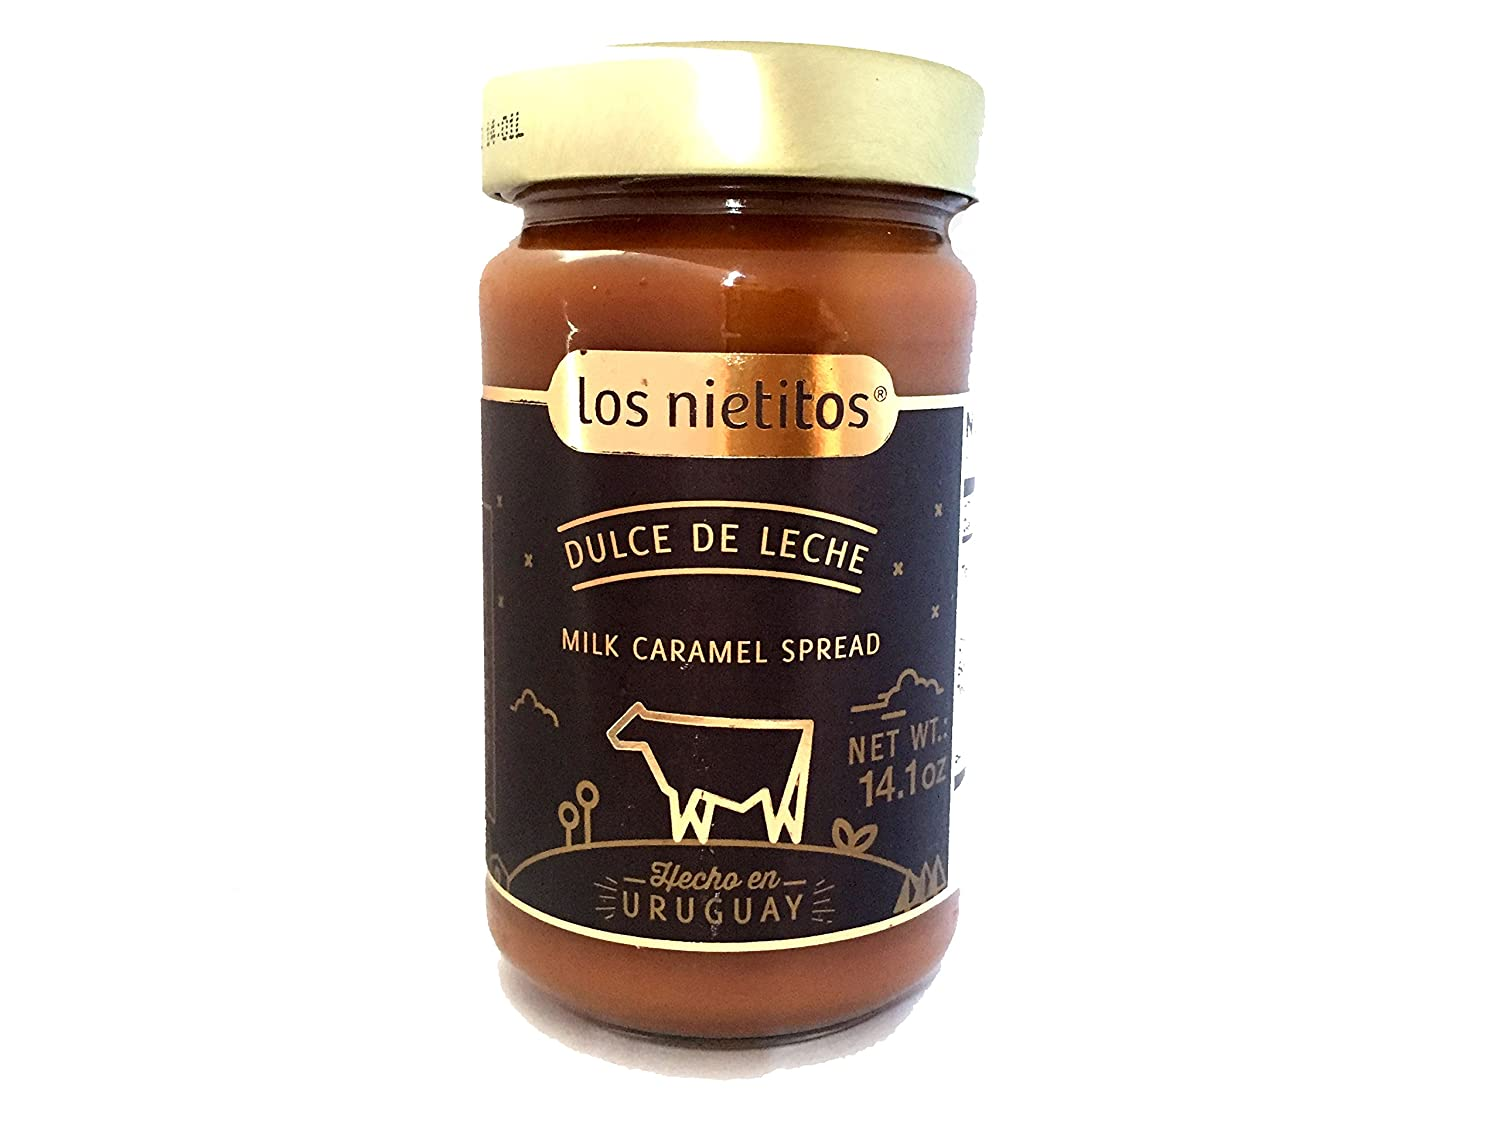 Amazon.com : Los Nietitos Dulce de Leche - Caramel Spread, 14.1 oz : Grocery & Gourmet Food